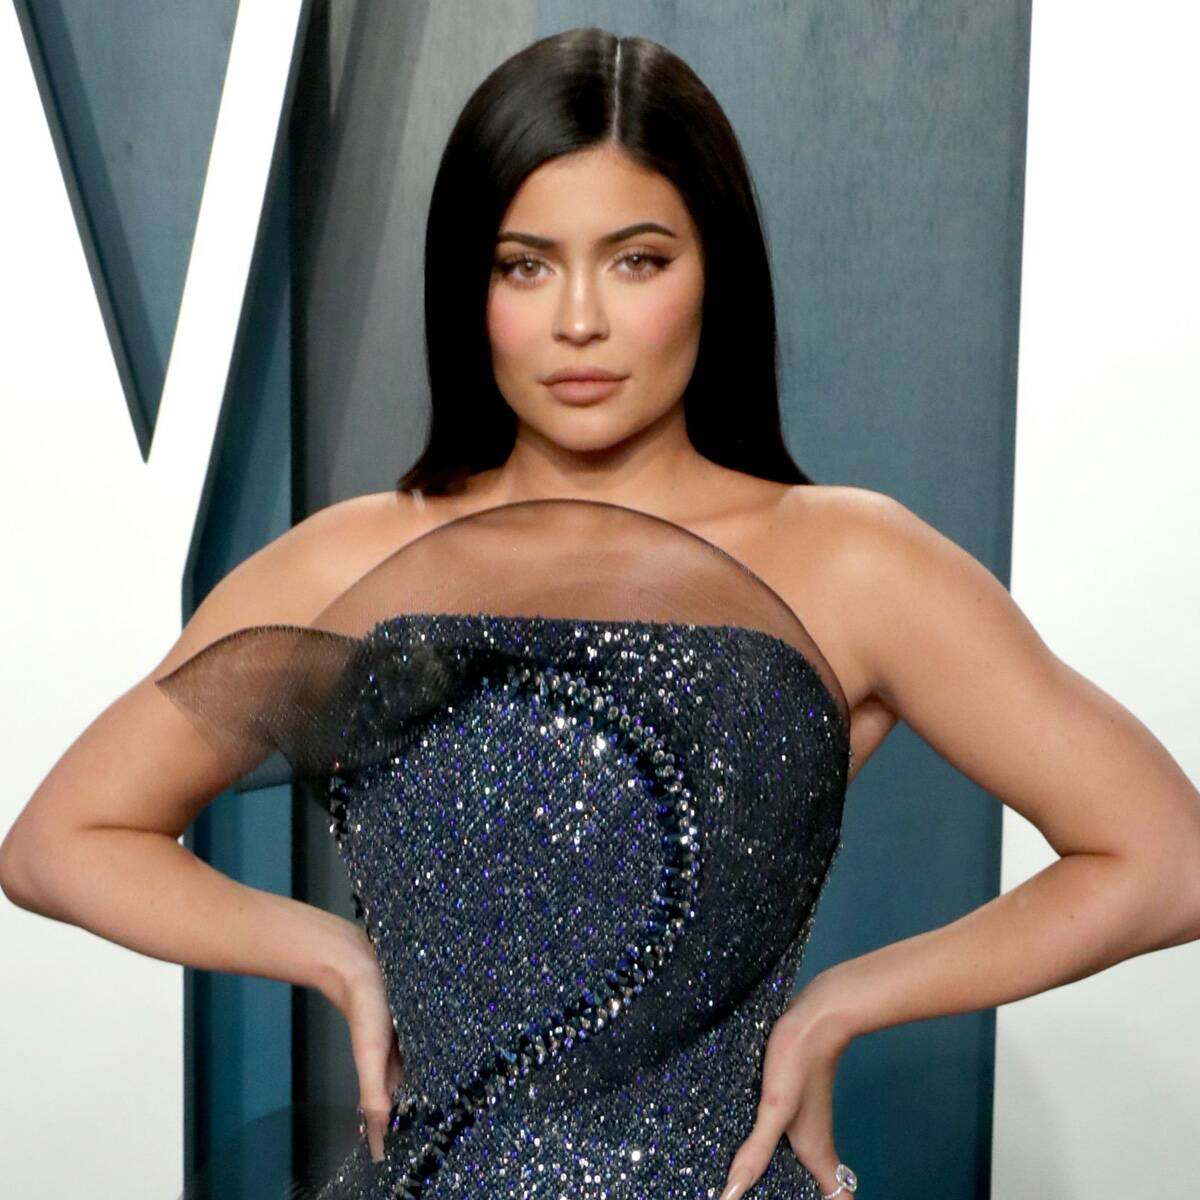 Kylie Jenner's Latest Post Will Give You Keeping Up With the Kardashians Nostalgia